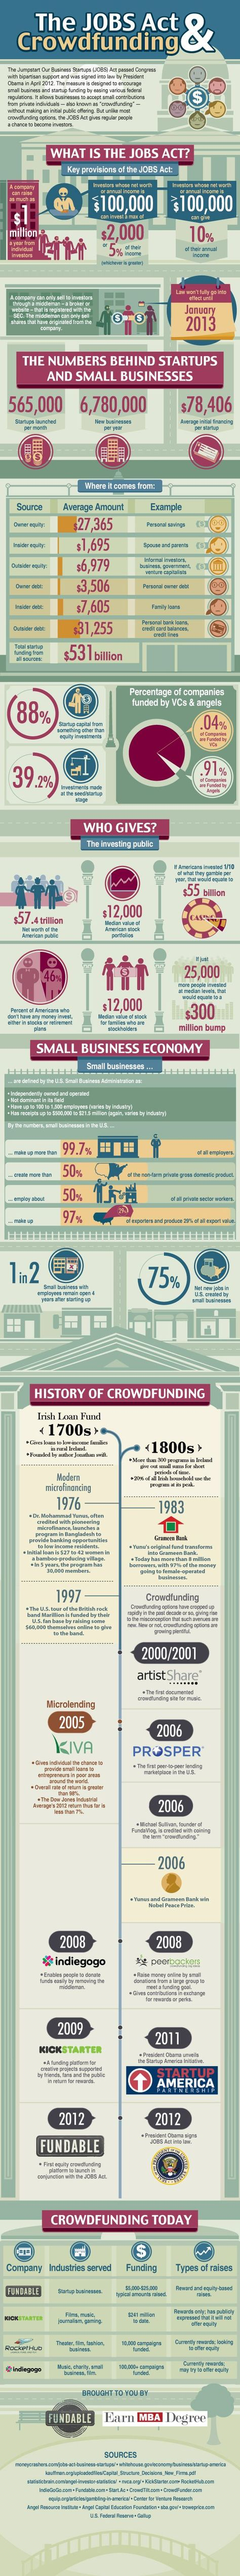 The JOBS Act: What Startups and Small Businesses Need to Know [Infographic]